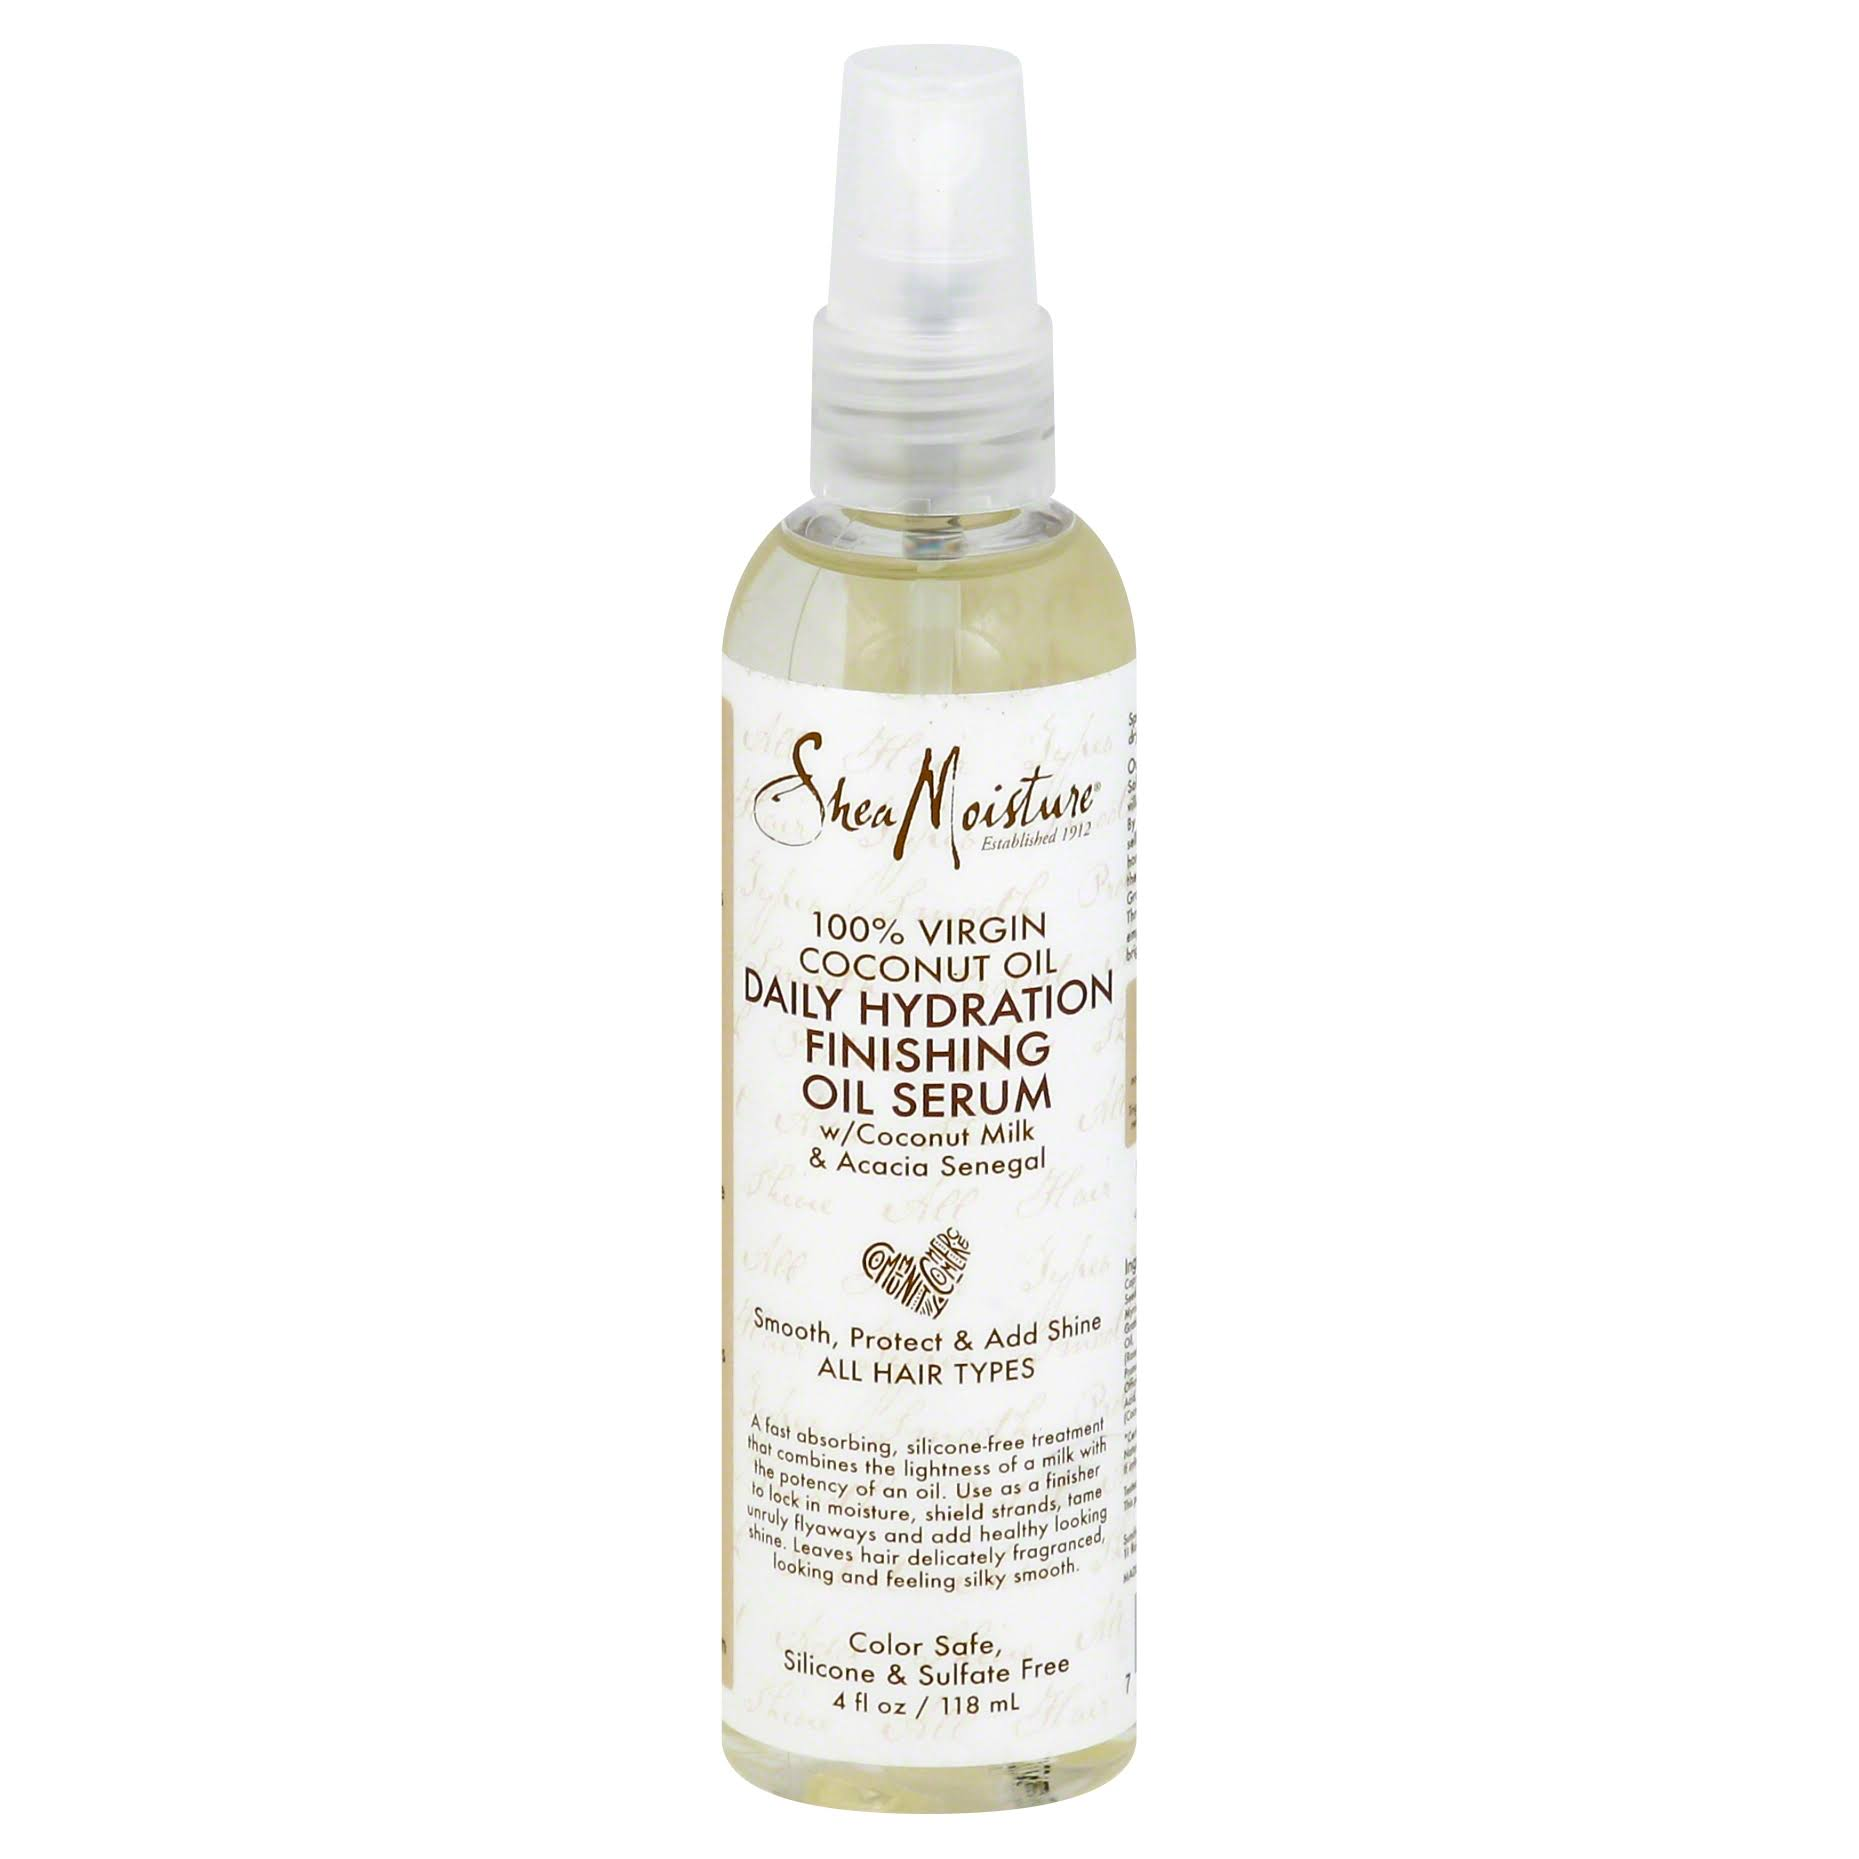 Shea Moisture Coconut Oil Daily Hydration Finishing Oil Serum - 4oz